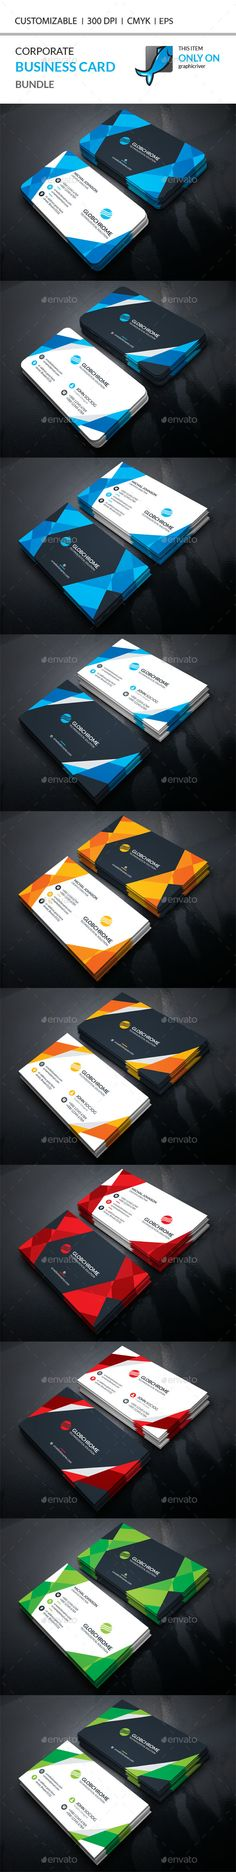 Corporate Business Card Template PSD Bundle. Download here: http://graphicriver.net/item/corporate-business-card-bundle/15765021?ref=ksioks